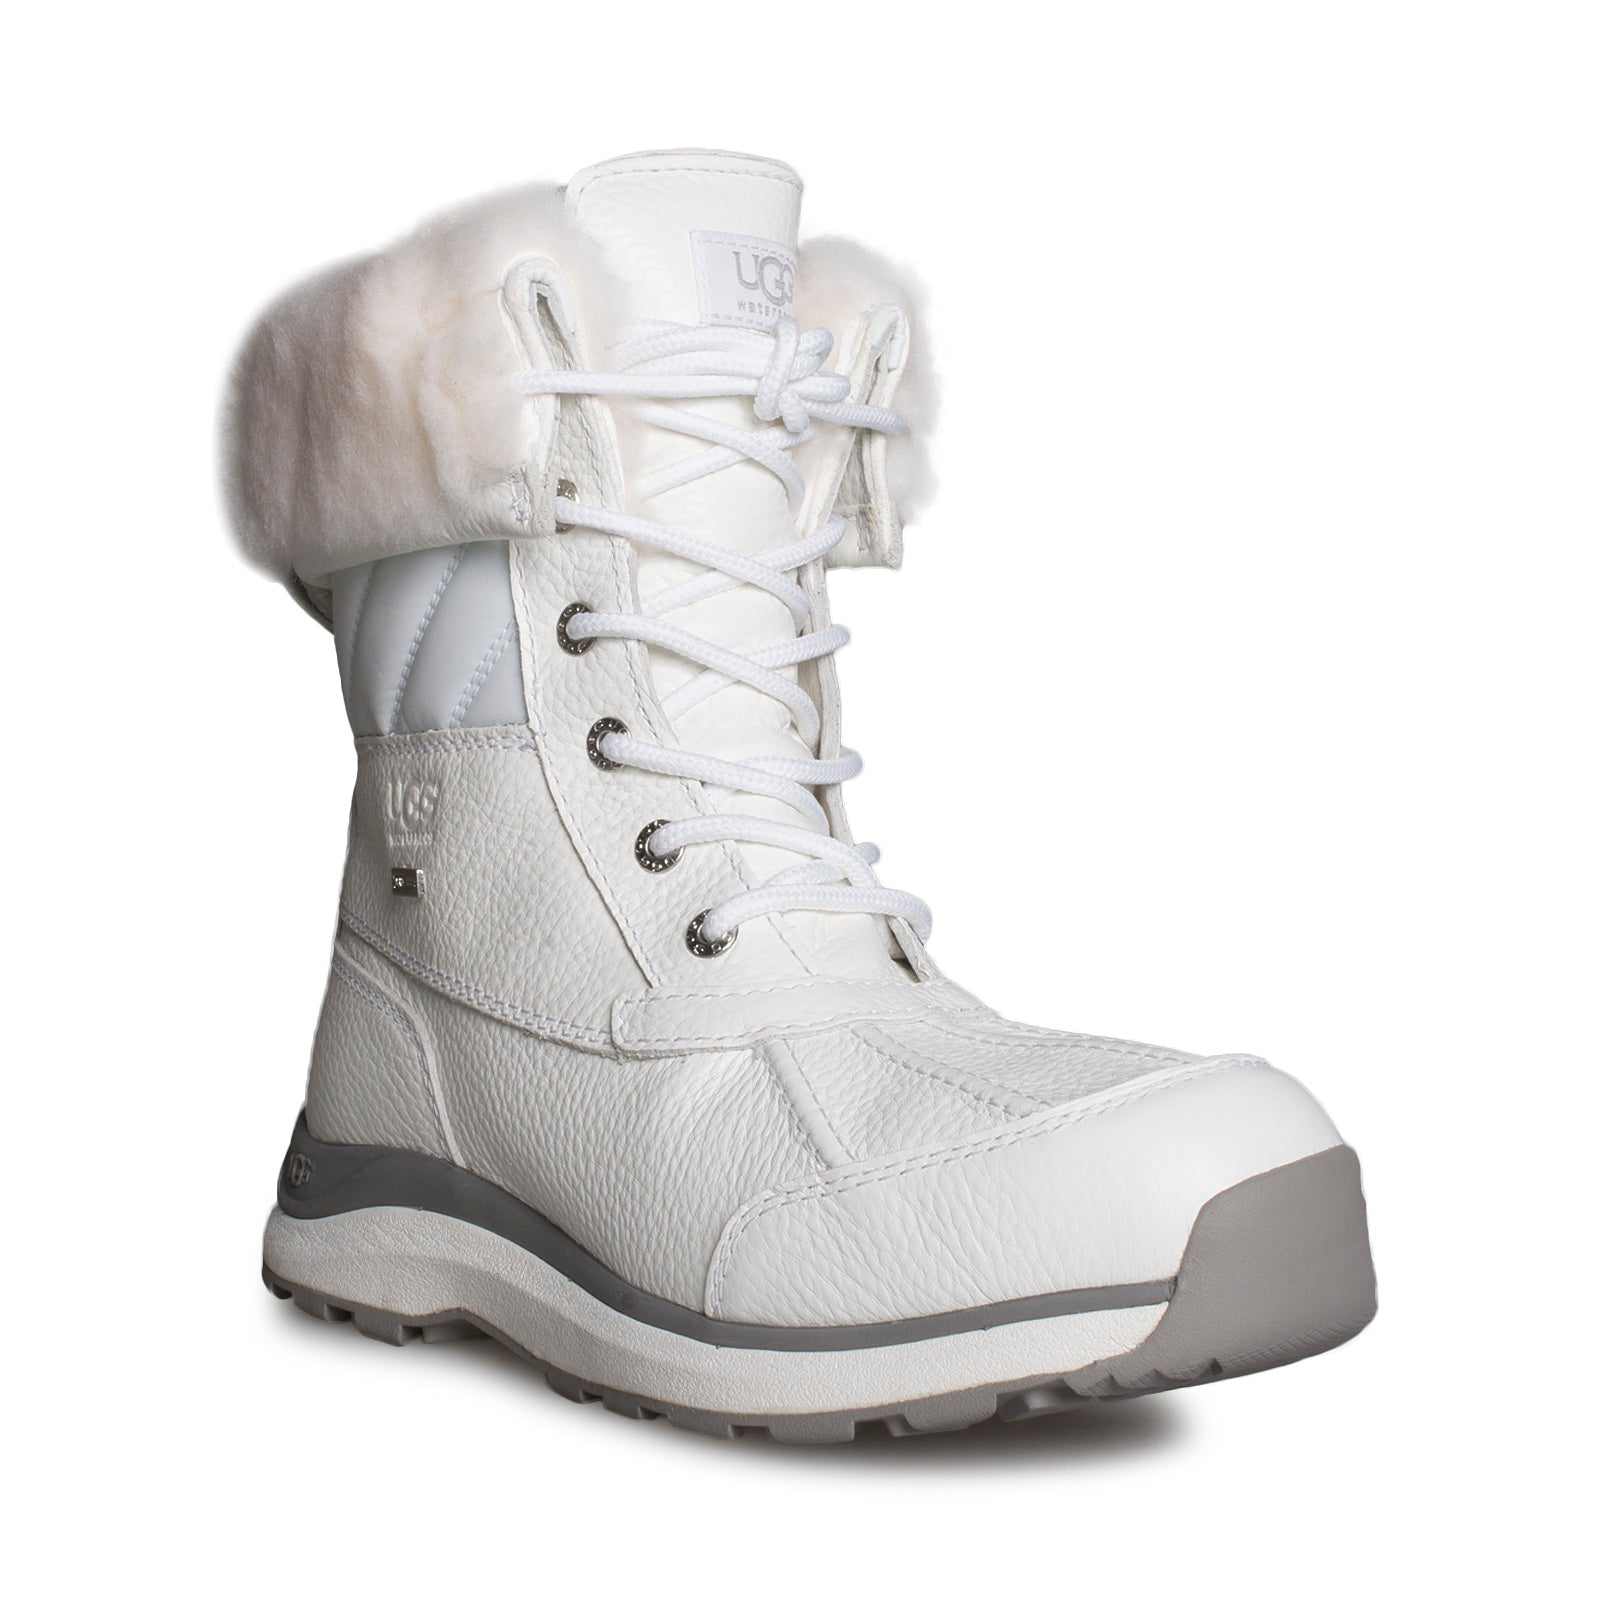 7a4c4c148 UGG Adirondack III Quilt White Boots - Women's - MyCozyBoots